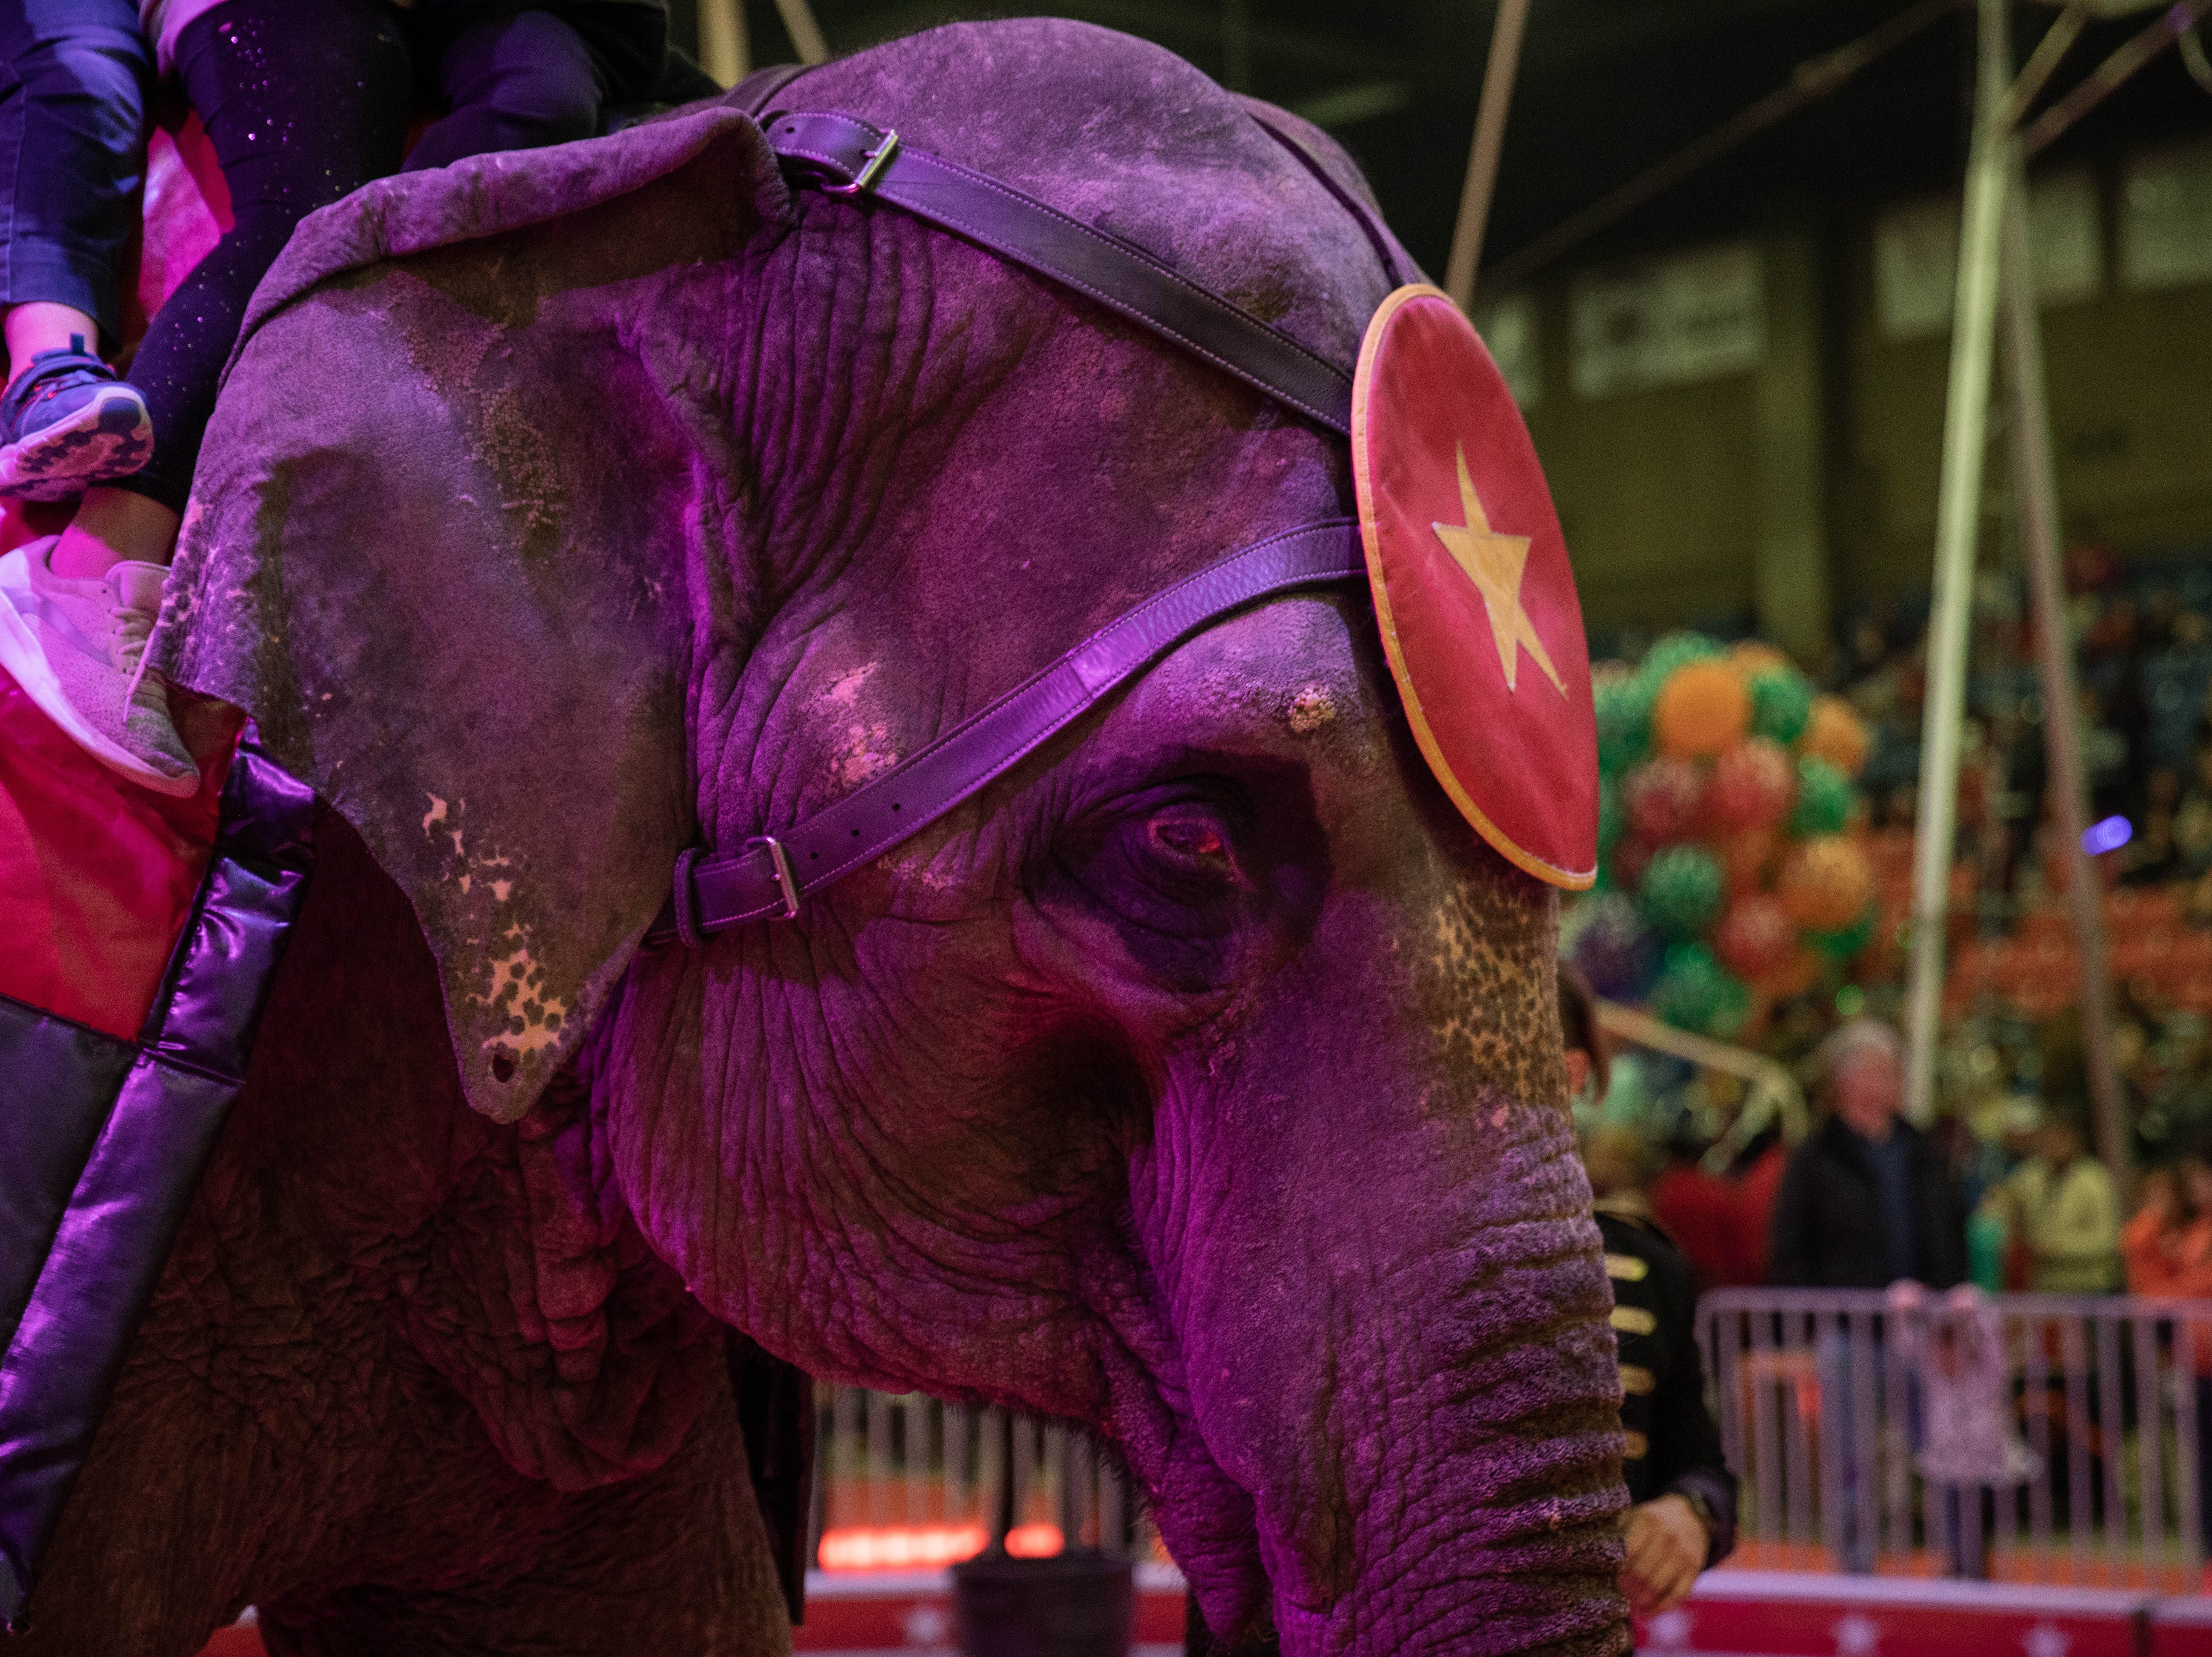 One of three elephants giving rides during intermission of the Kosair Shrine Circus, Saturday, Feb. 9, 2019 in Louisville Ky. The average age of these elephants is 40 years old; in captivity they can live to be 80, while their wild counterparts are more likely to live just 30-40 years.